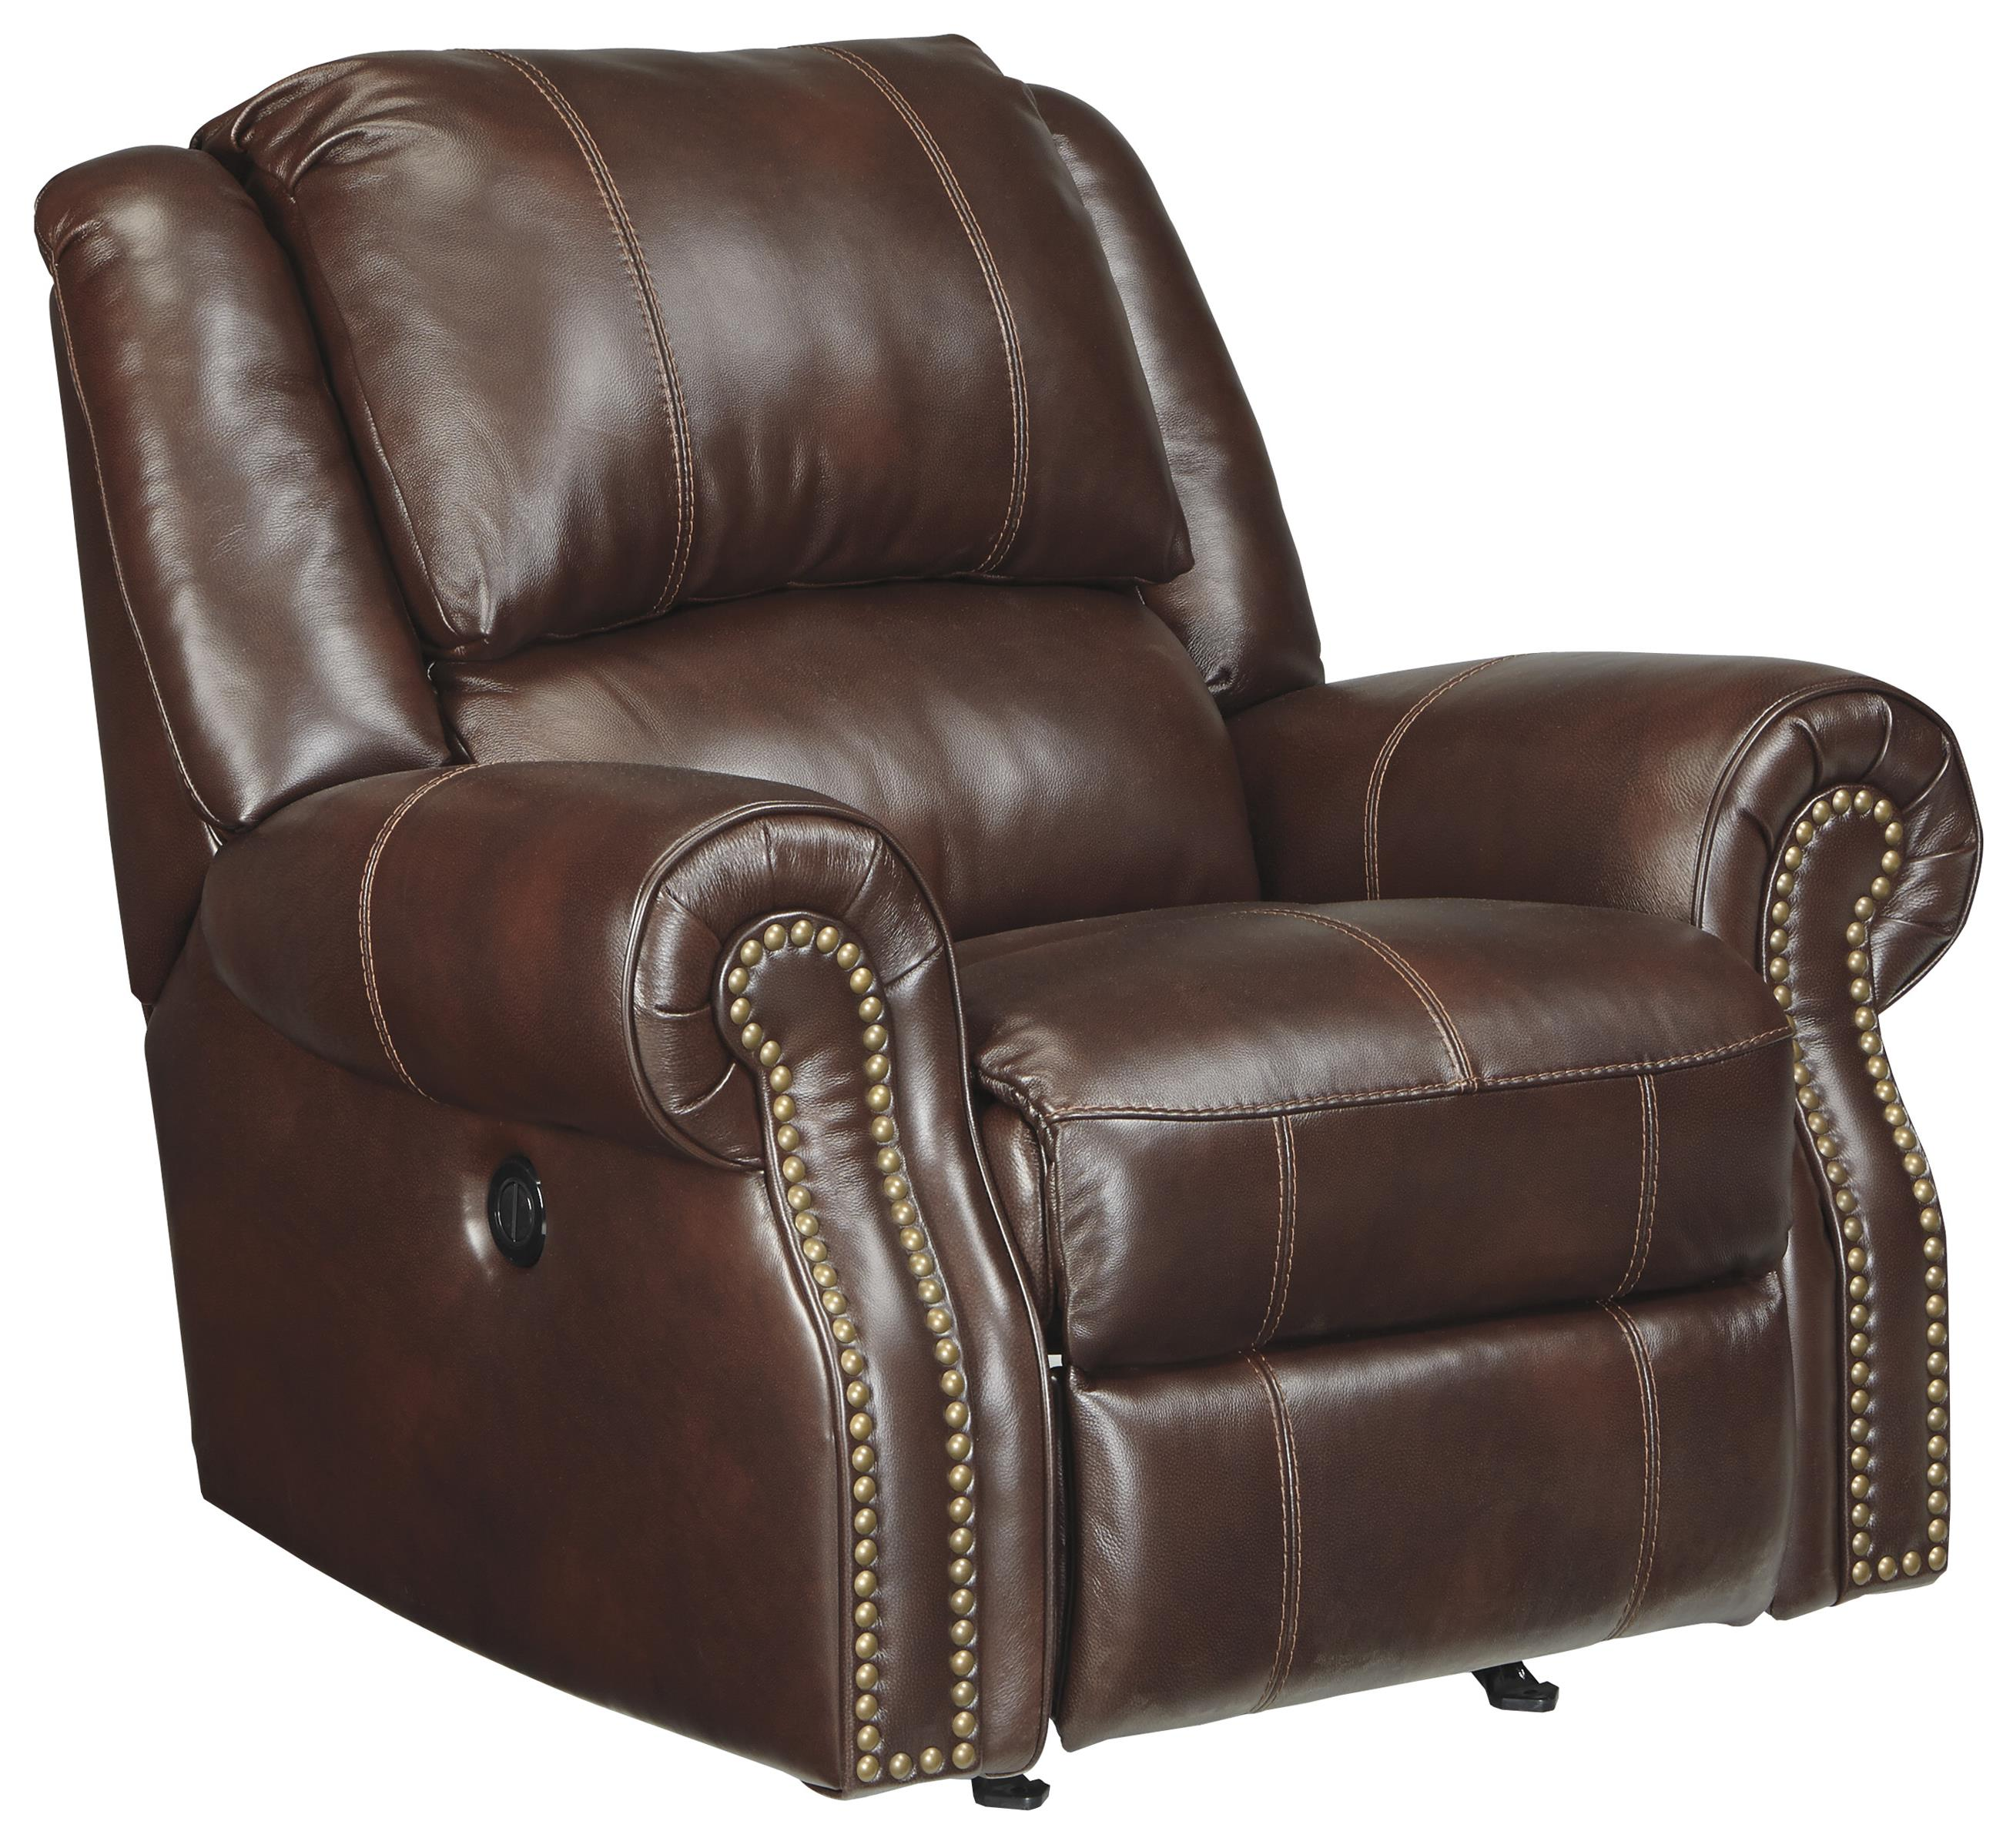 Signature Design by Ashley Collinsville Power Rocker Recliner - Item Number: U7210098